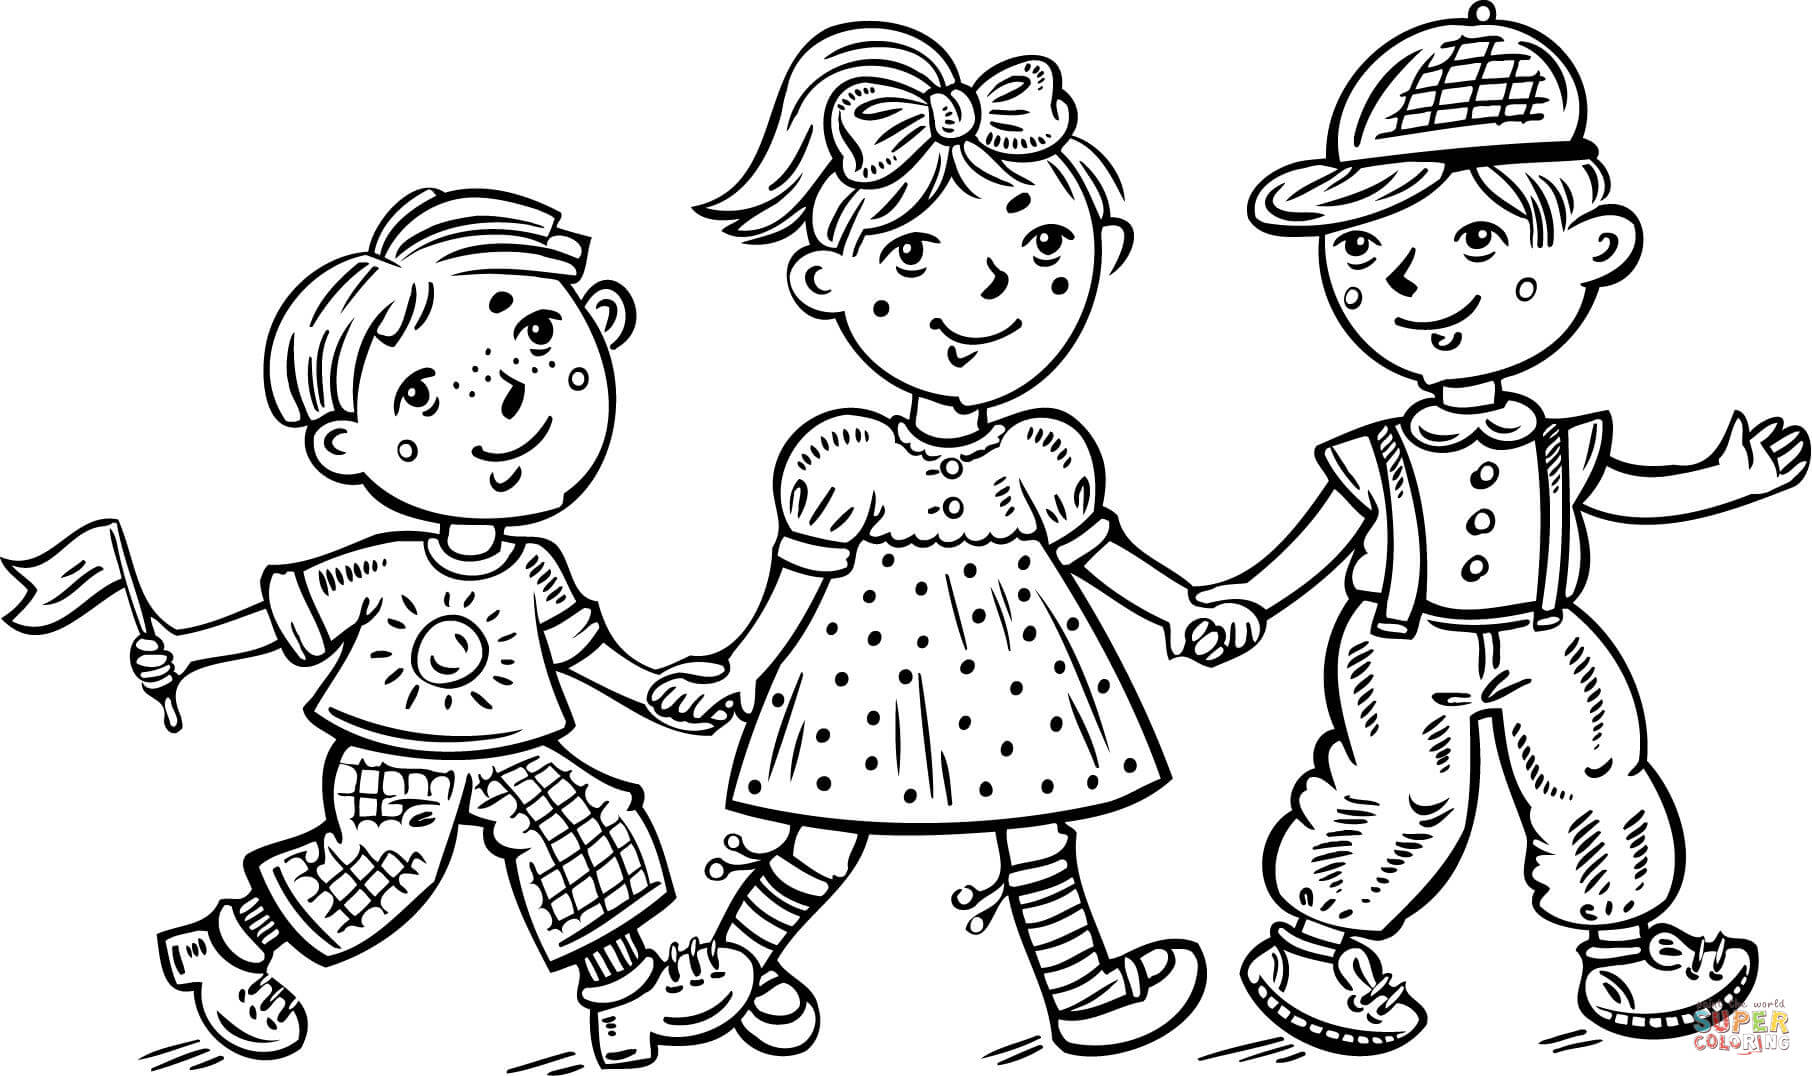 Coloring Pages Of Boy And Girl at GetDrawings.com | Free for ...